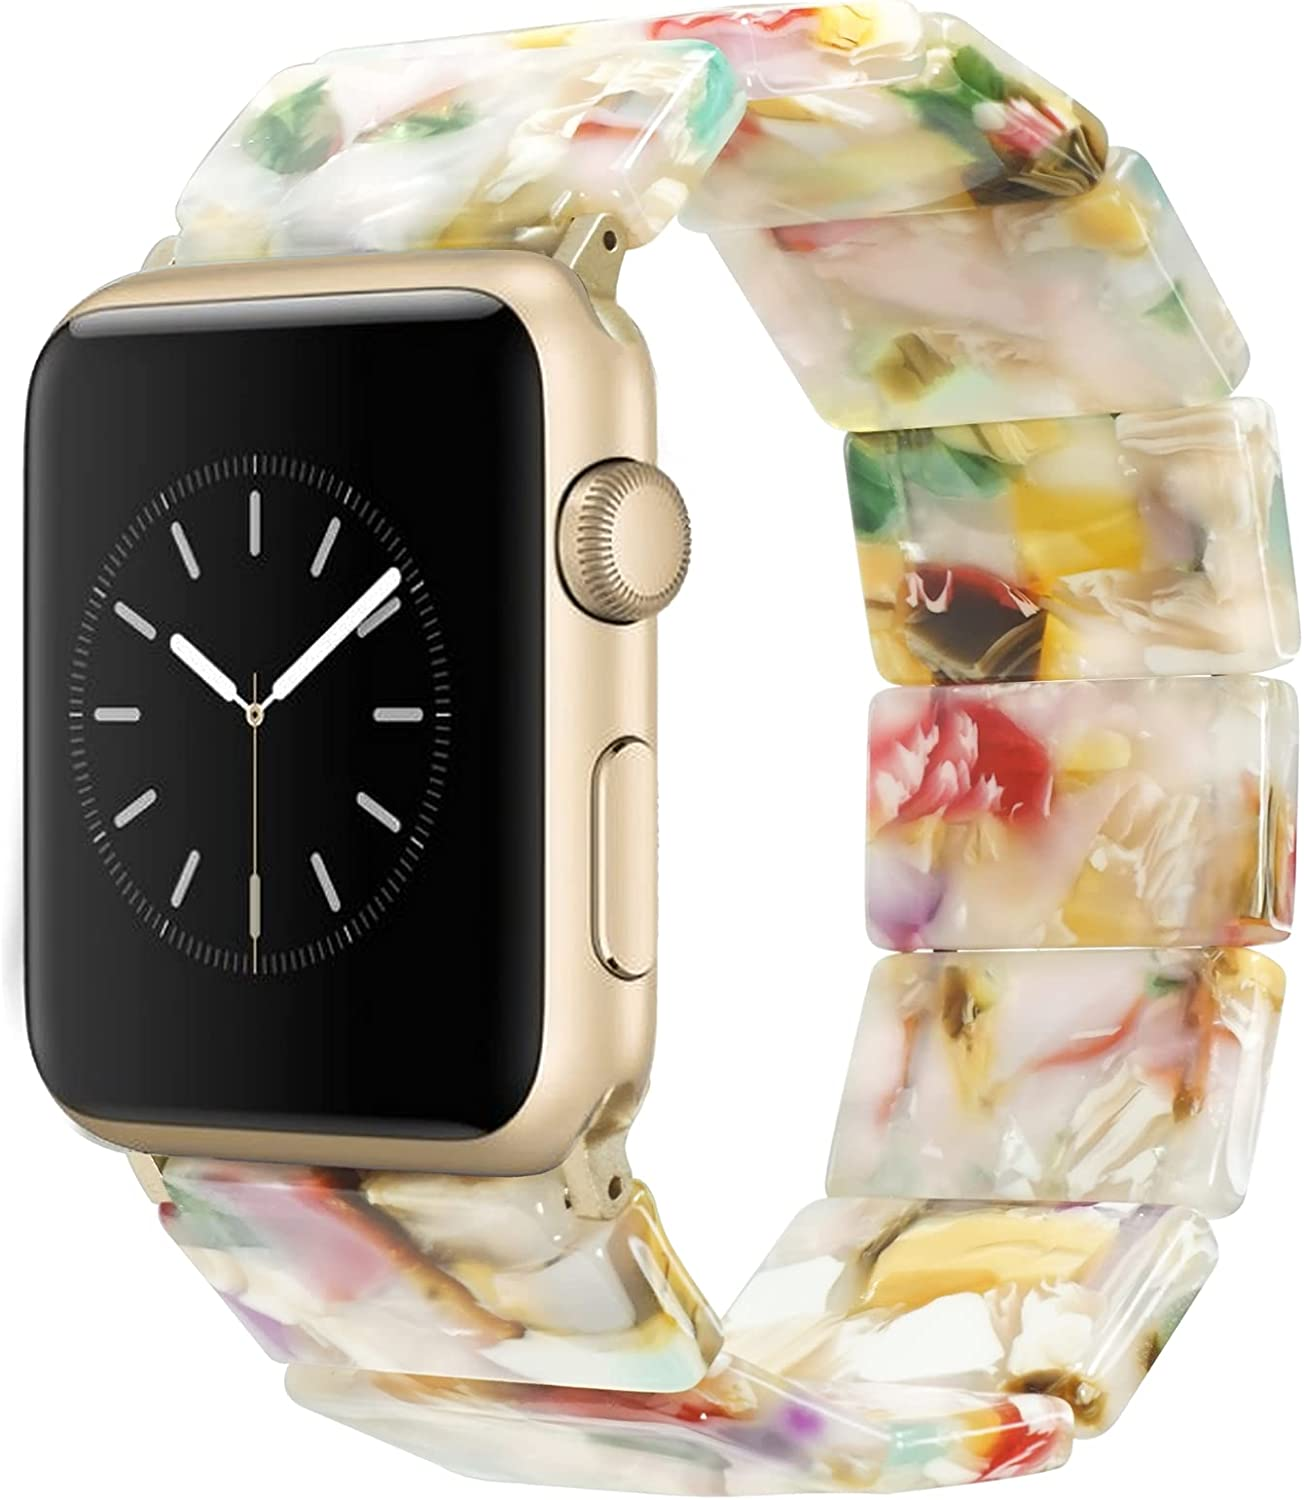 Heesch Compatible with Apple Watch Band for Women Tortoise Resin Elastic Watch Band Bracelet for iWatch SE Series 6/5/4/3/2/1, Girls Stretchy Fashion Dressy Jewelry Fancy Wristband for iWatch 38/40mm, 42/44mm